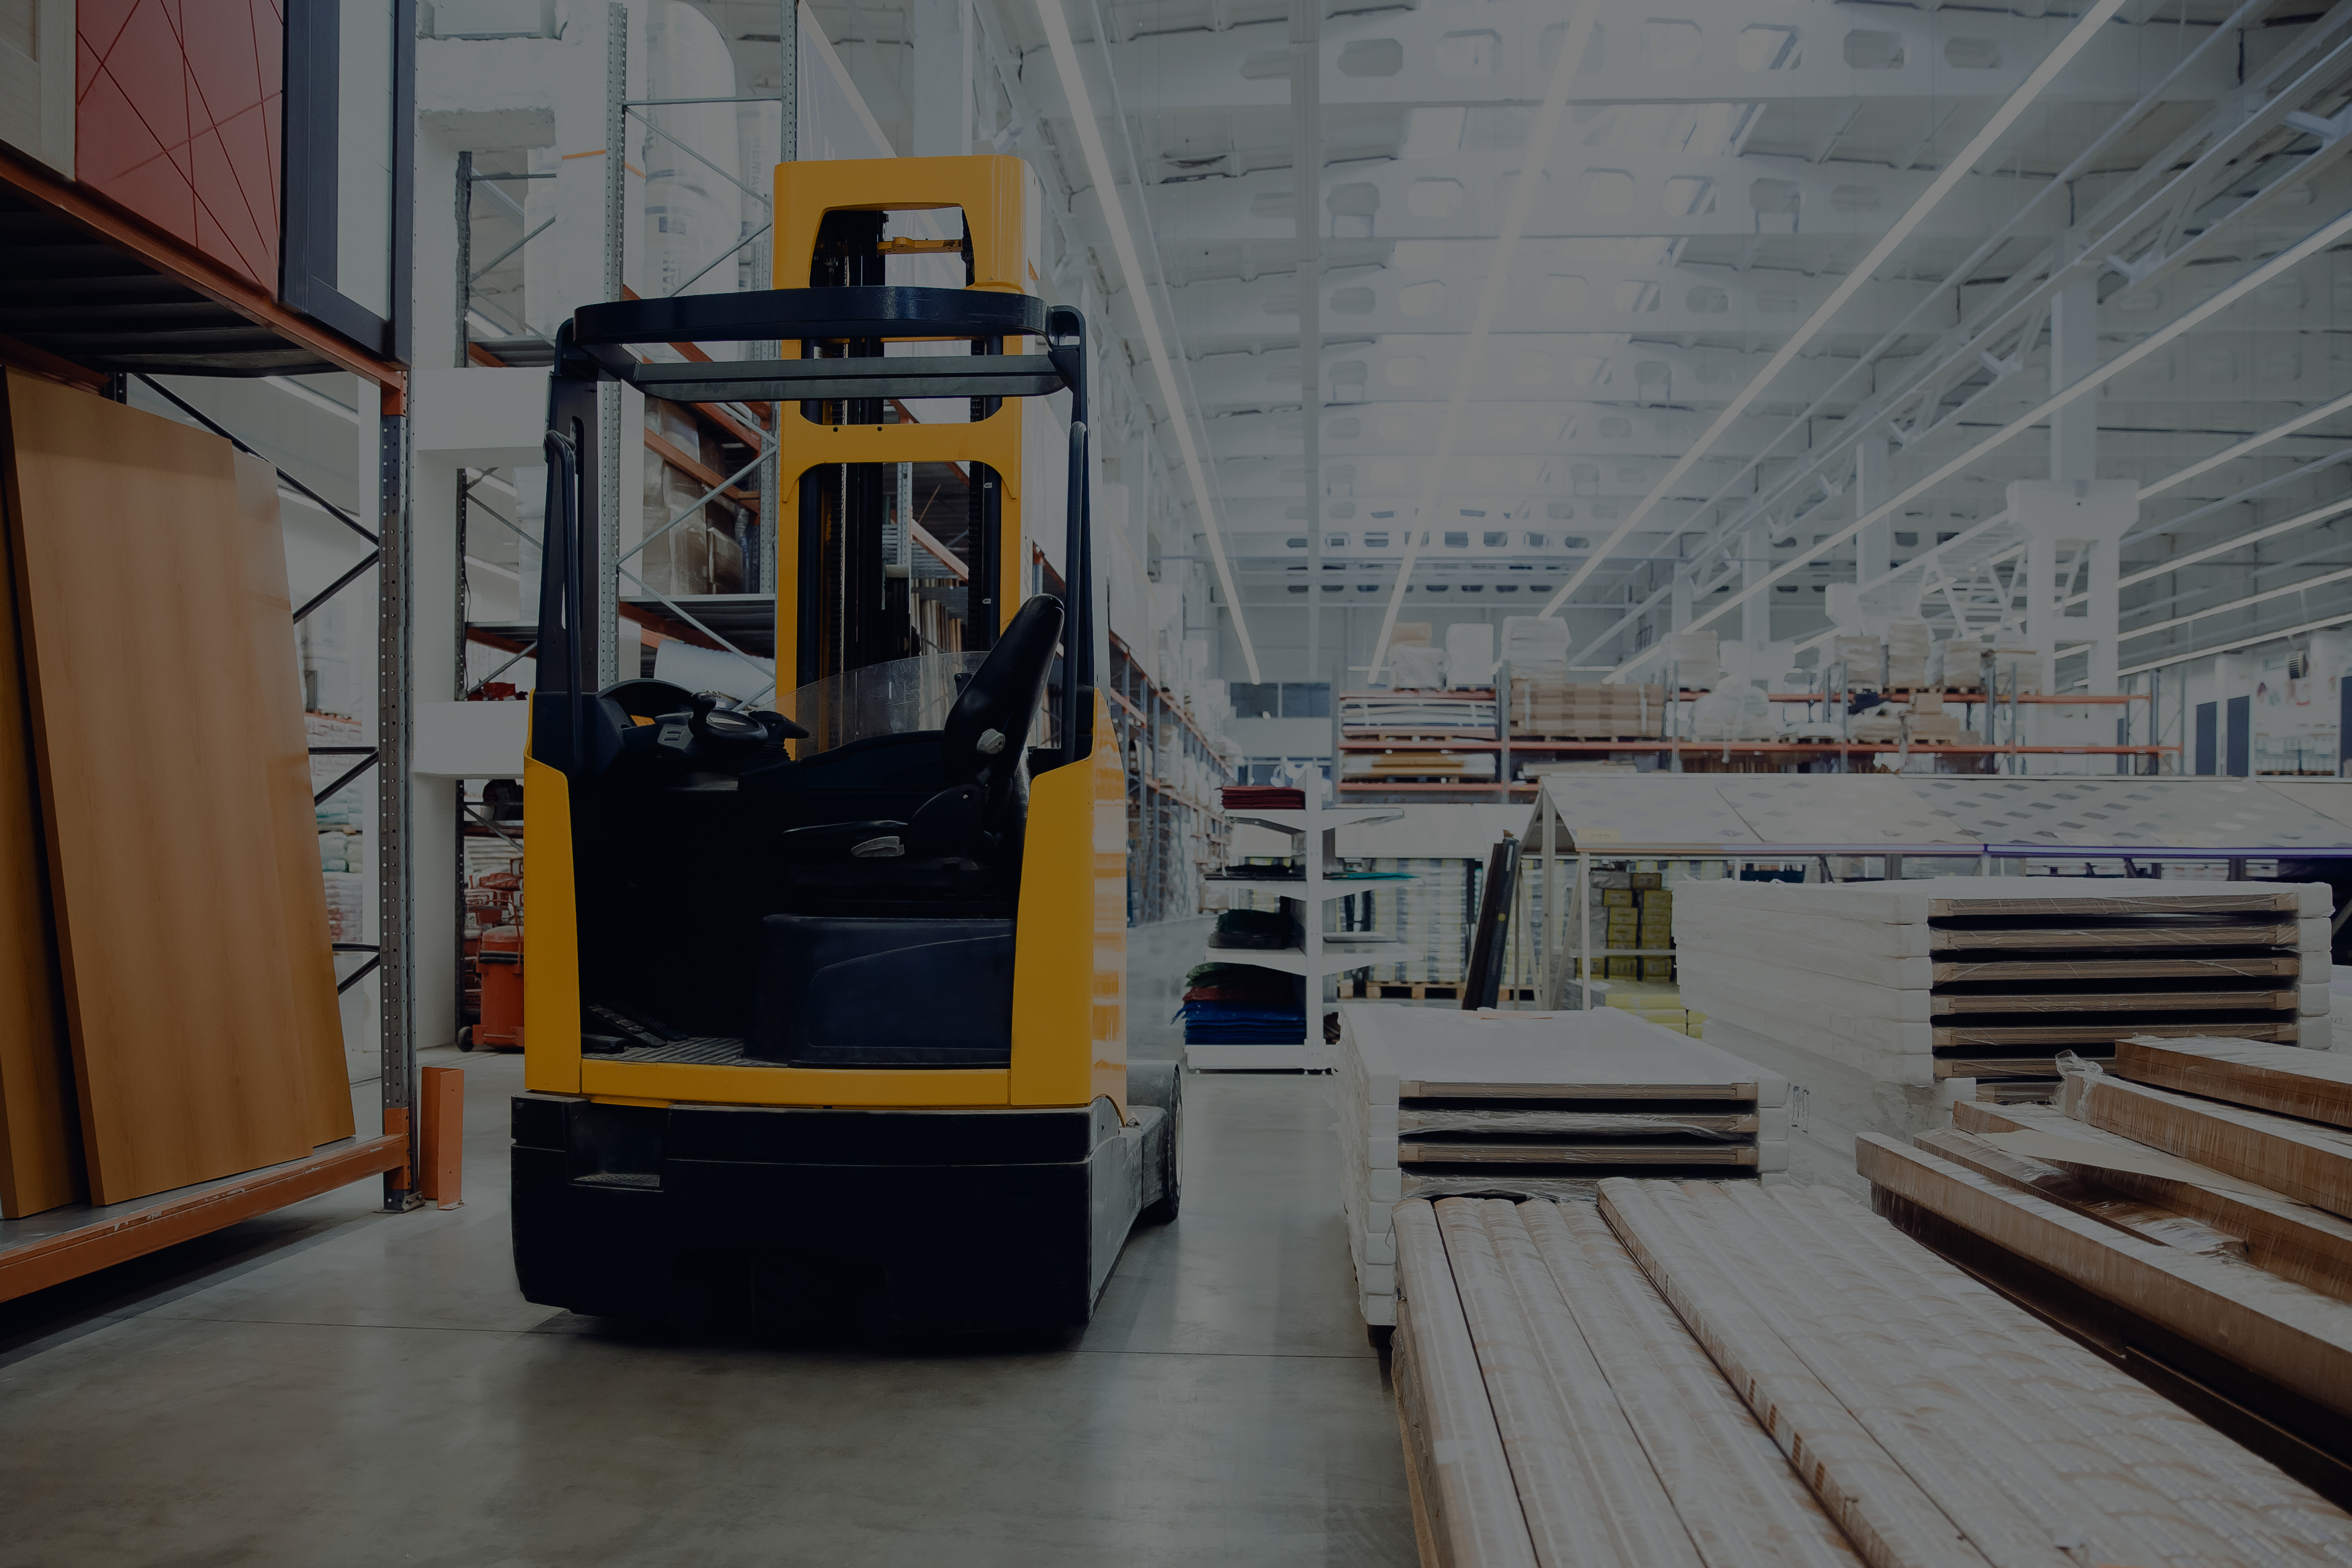 £730k Fine For Palmer Timber After Forklift Truck Hits 2 Workers